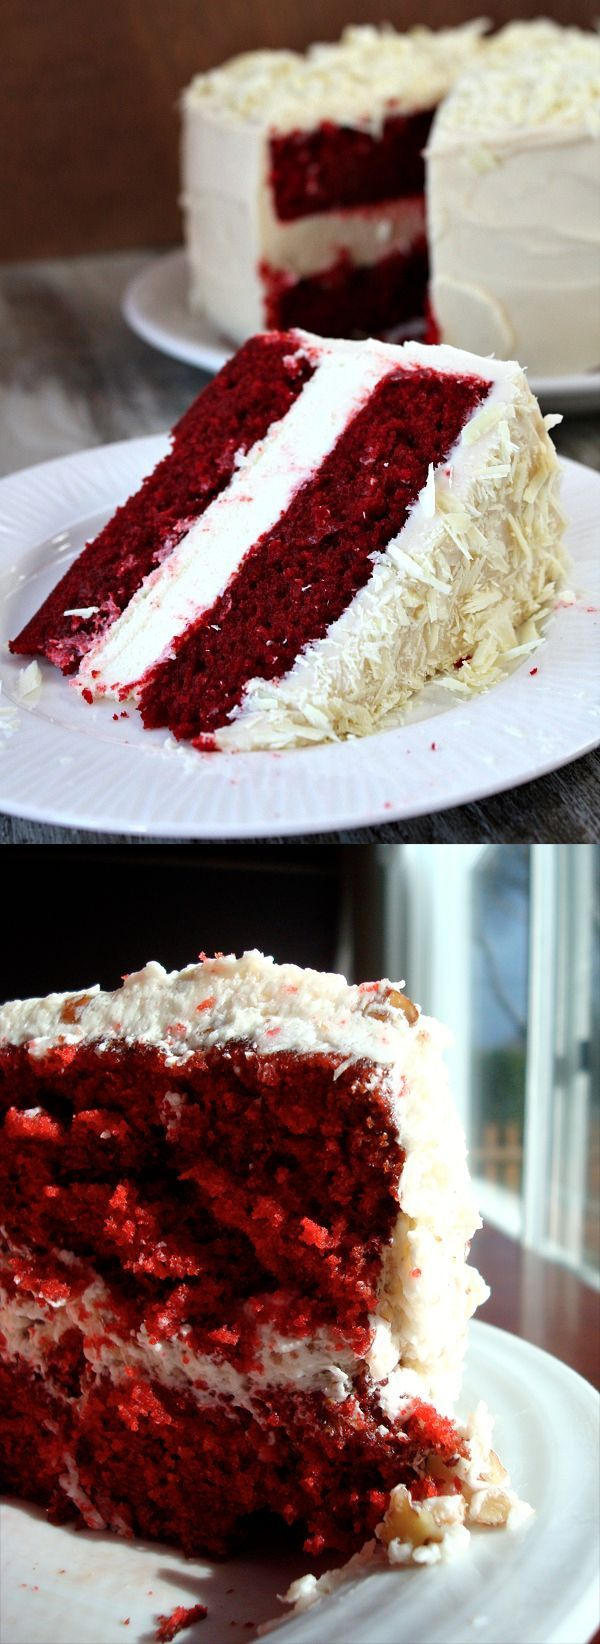 The Most Delicious Red Velvet Cake – Perfect for Valentine's Day  | followpics.co